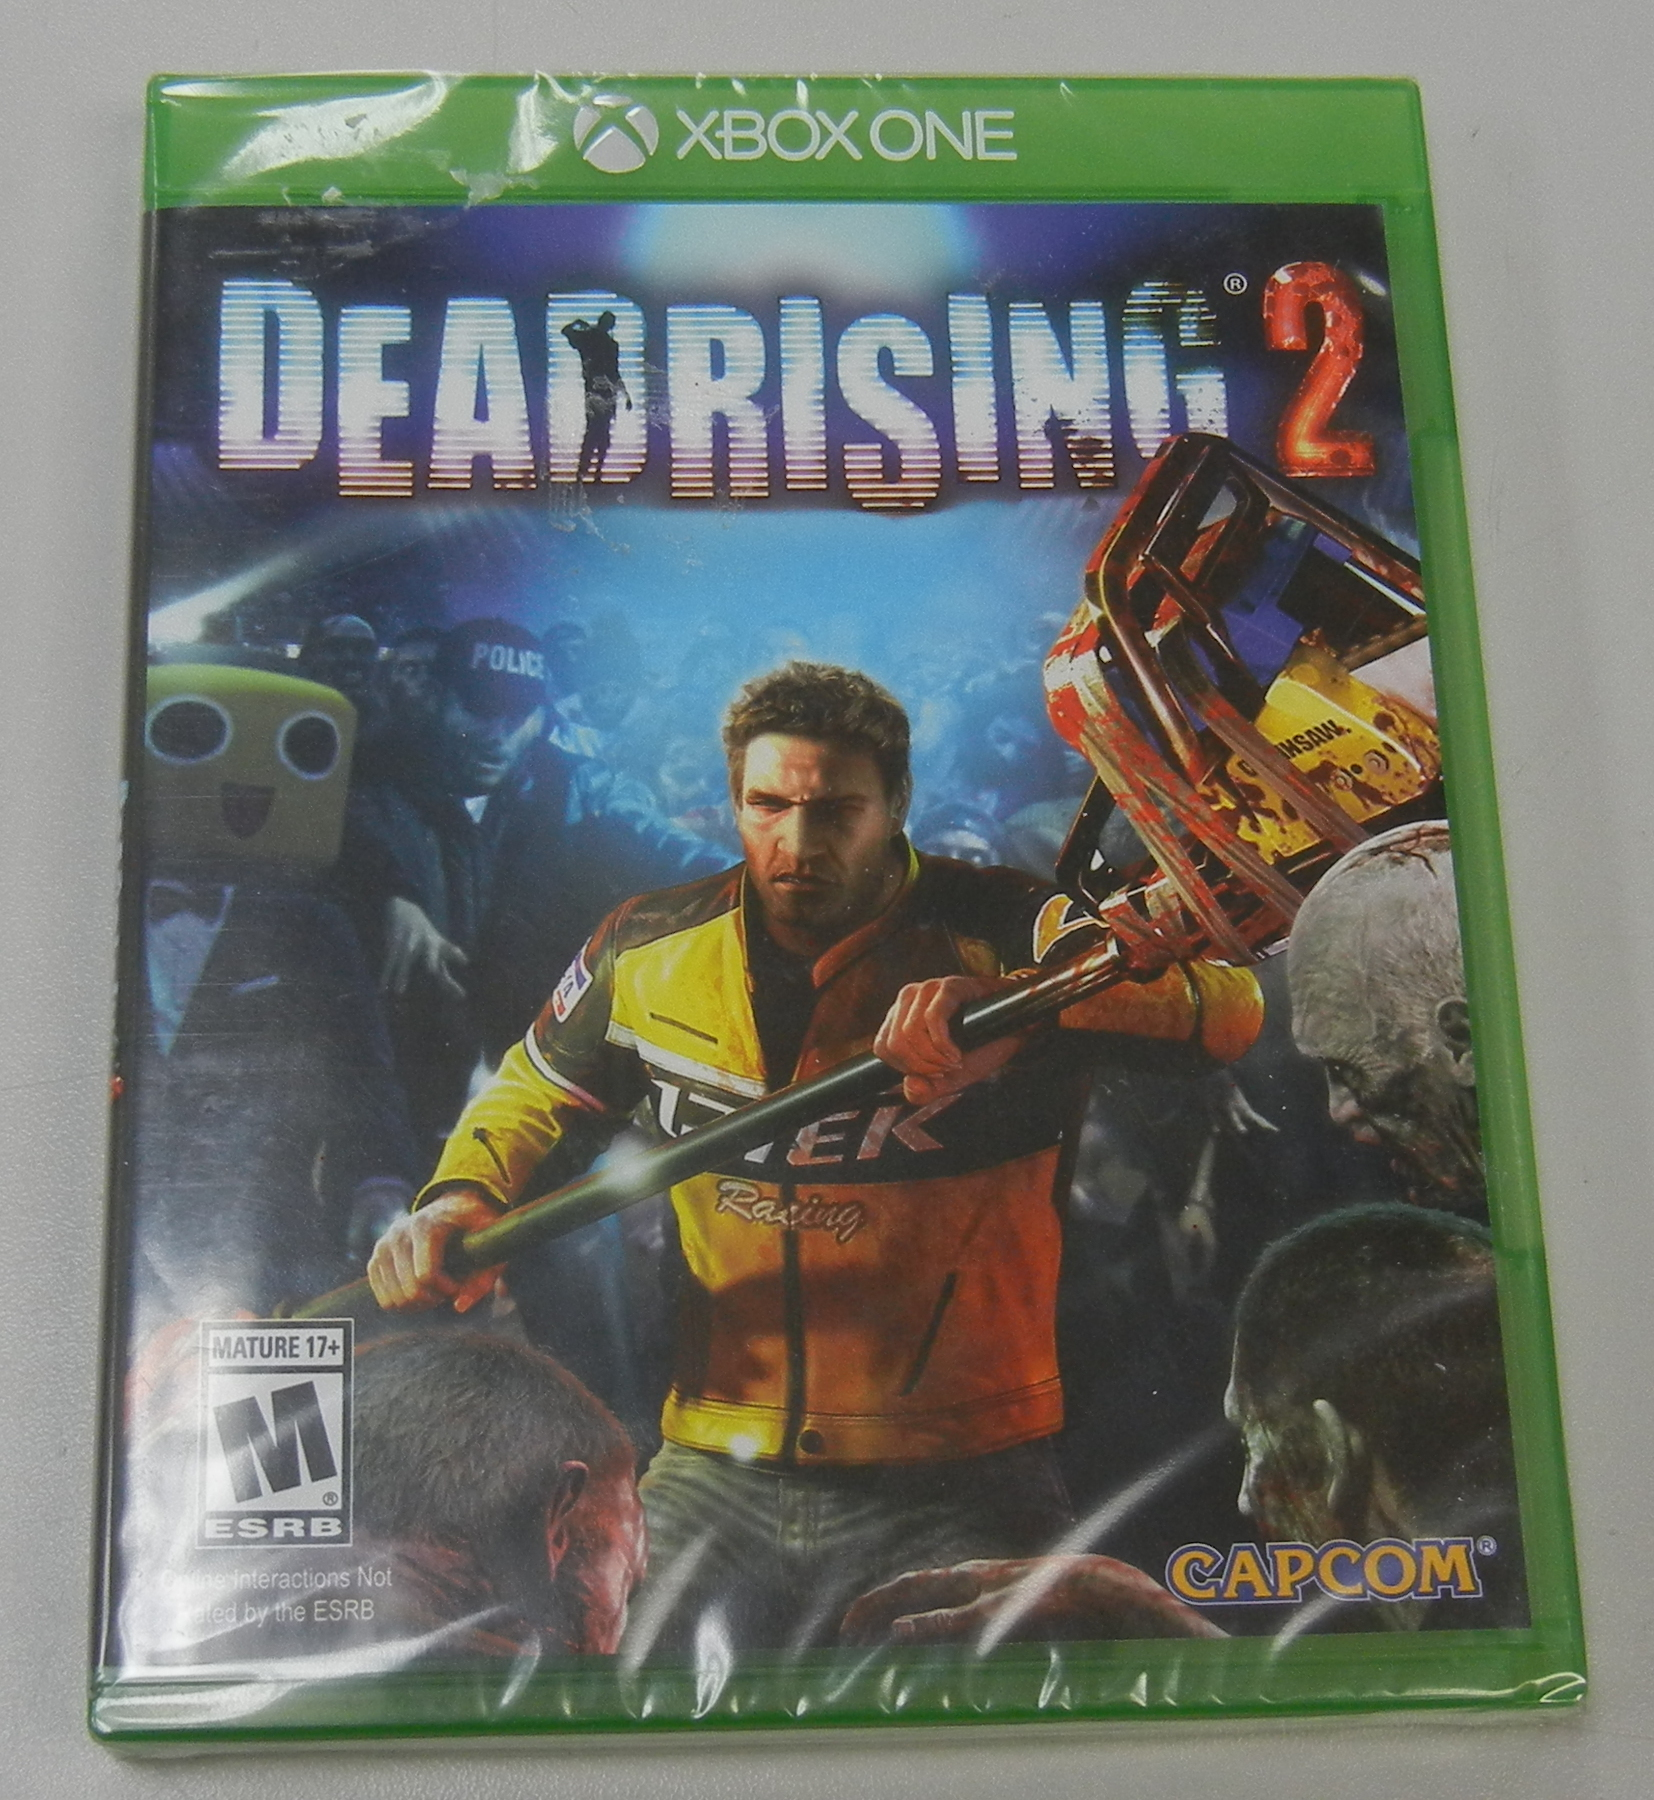 DEADRISING 2 XBOX ONE GAMES - REFURBISHED IN PLASTIC